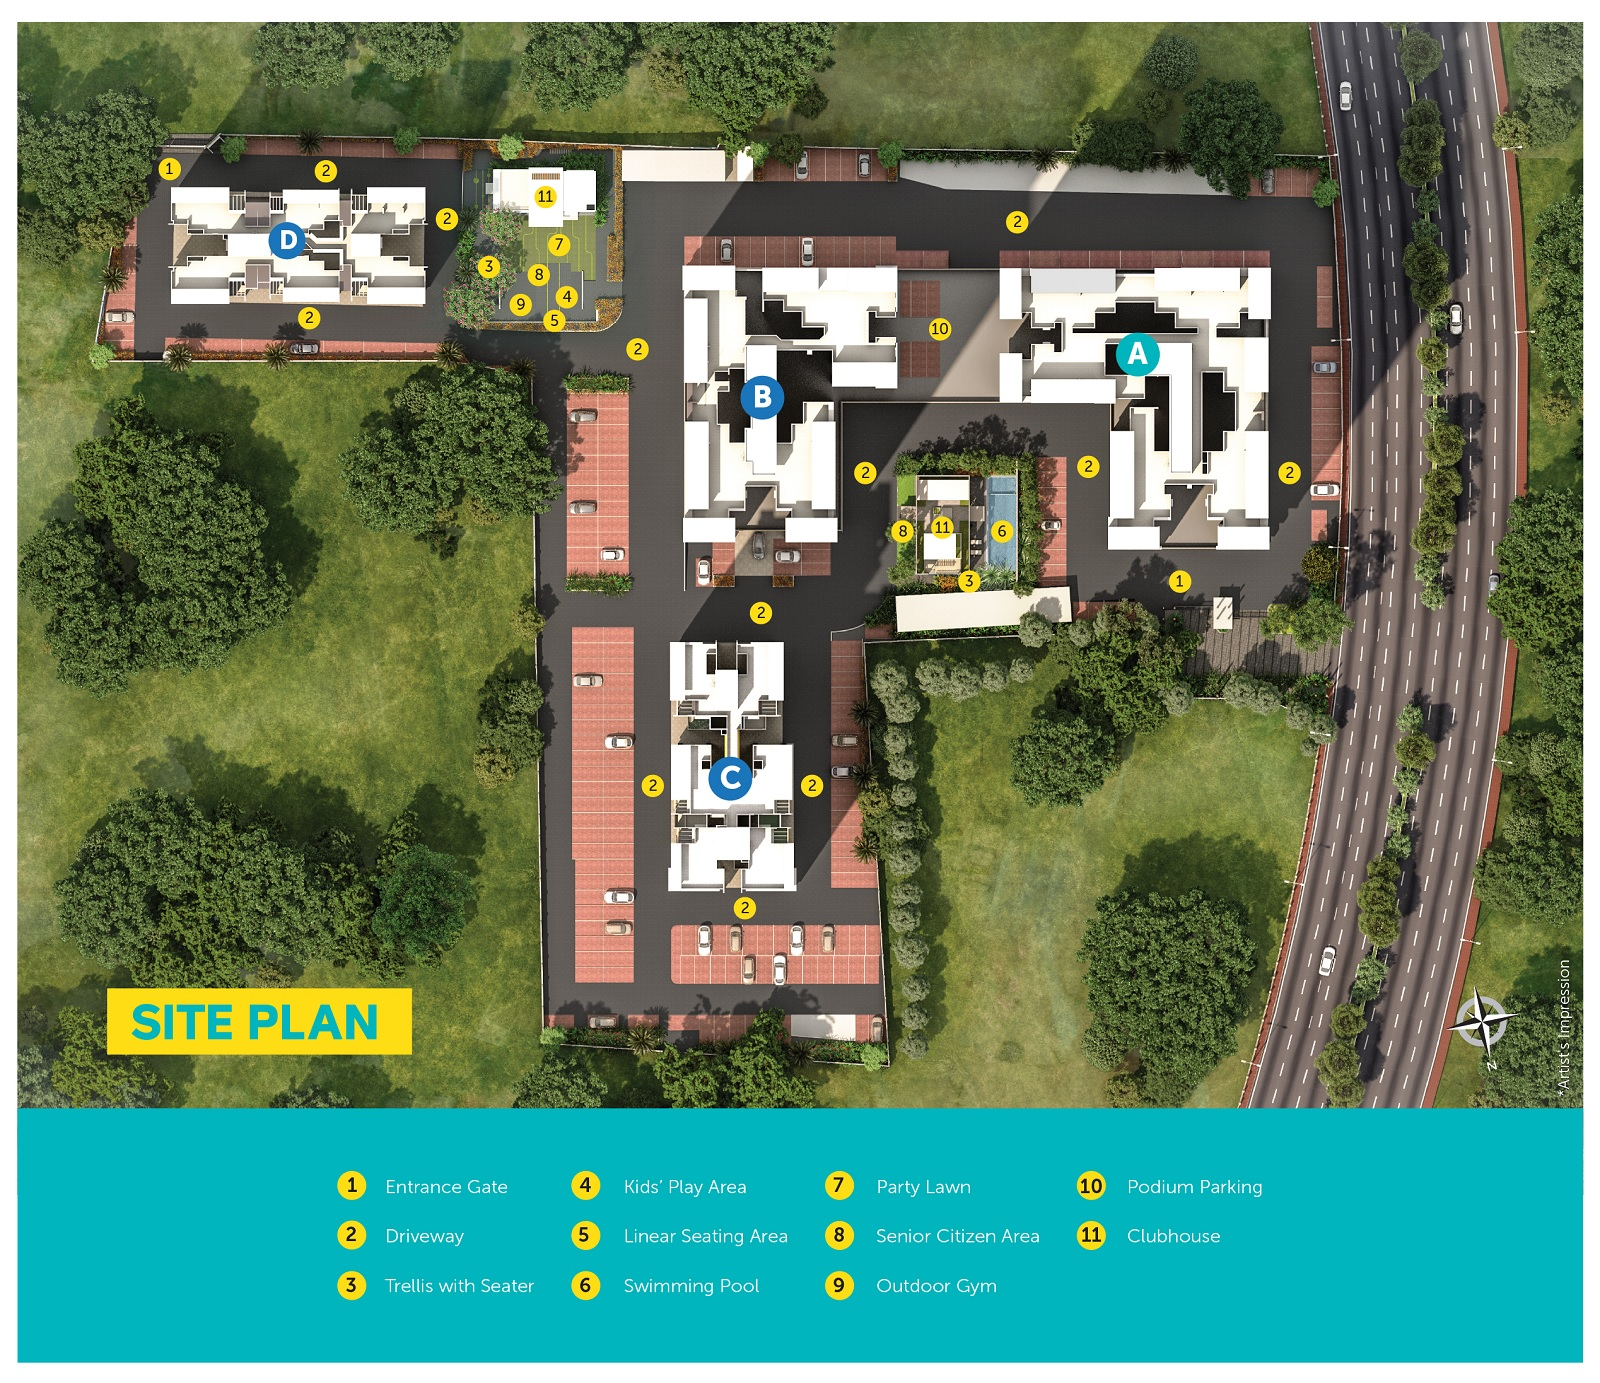 pristine equilife homes phase iii project master plan image1